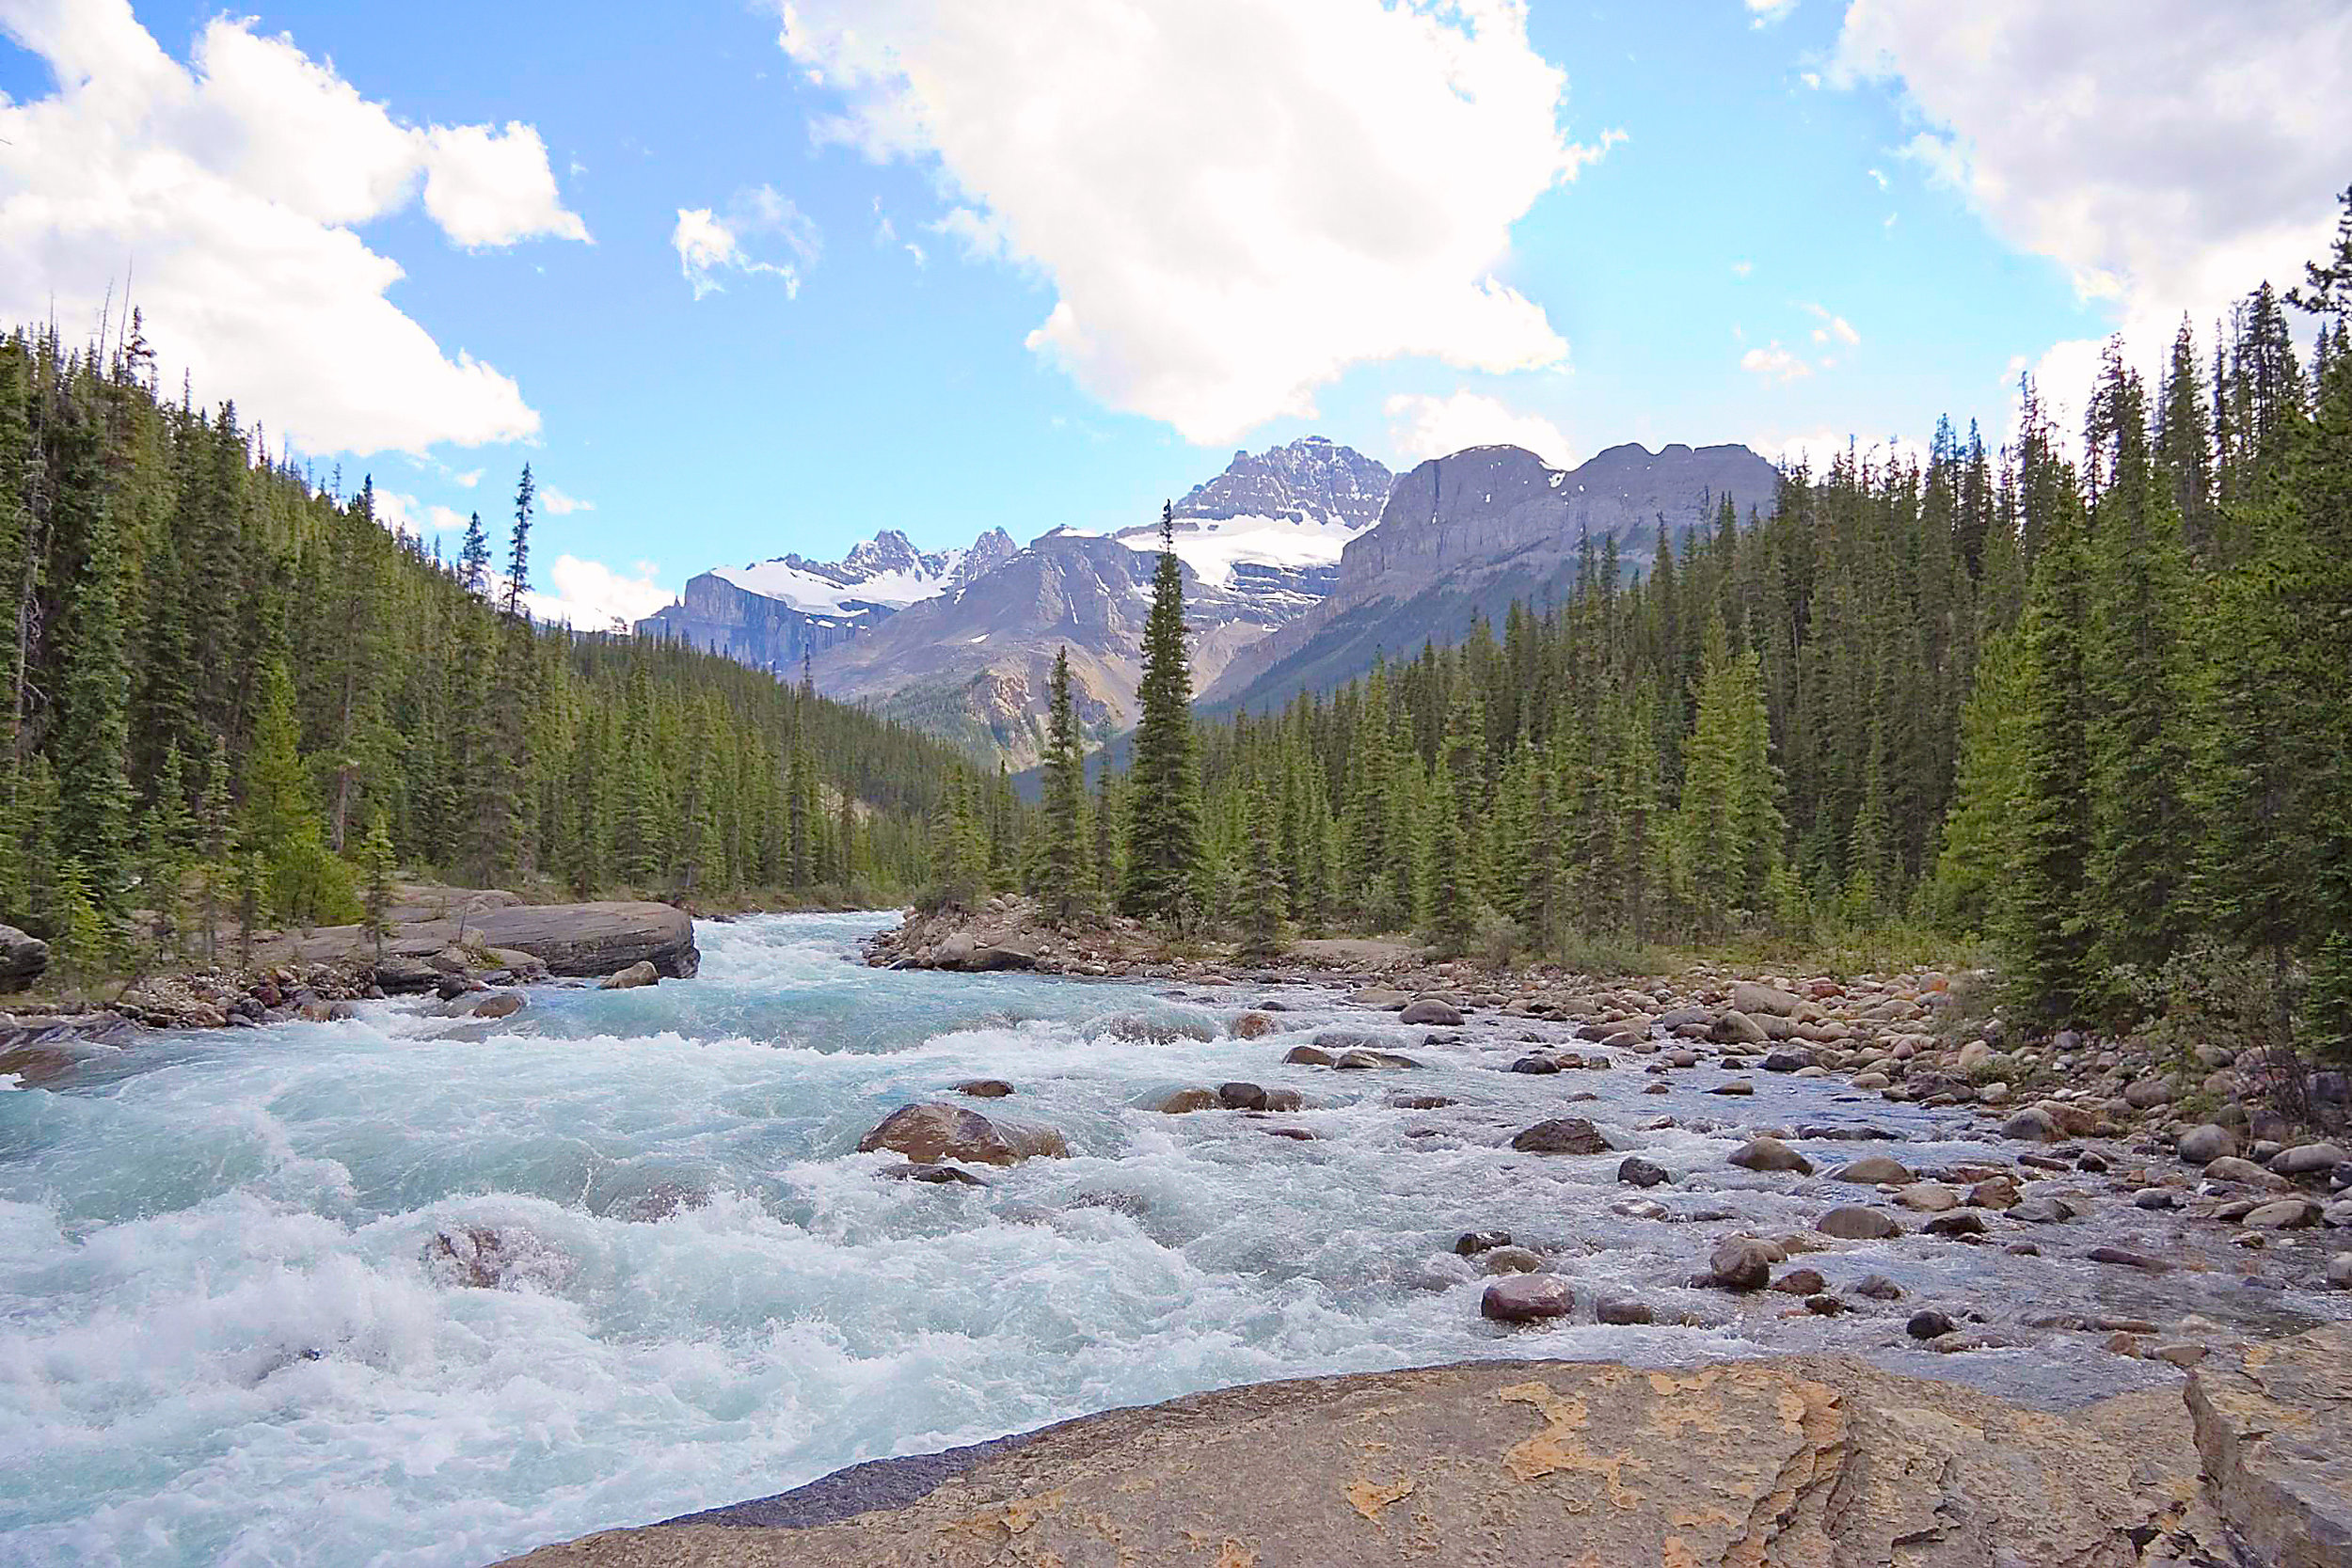 1858410 - rapid mistaya river - banff national park, canada -